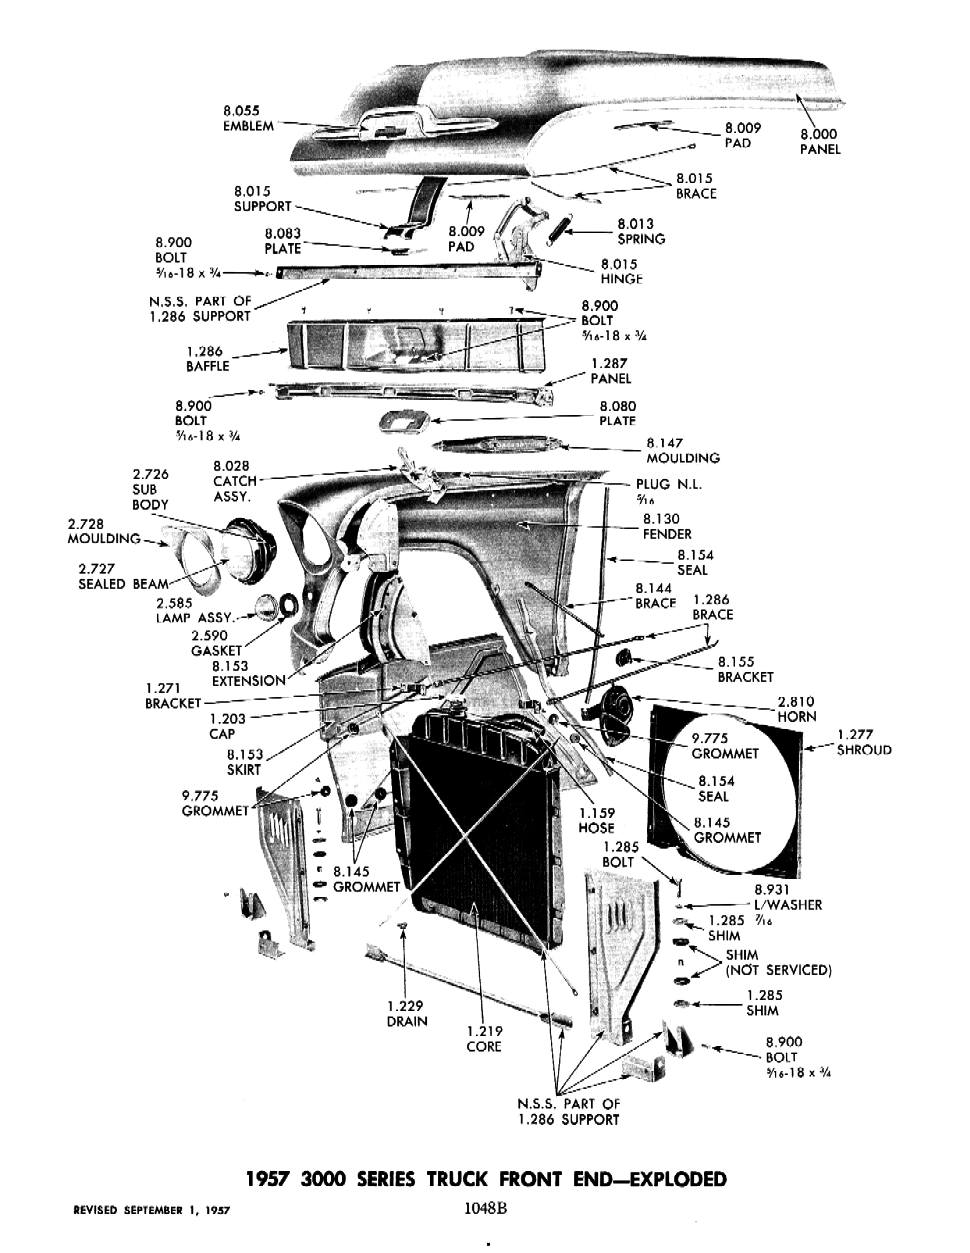 59 Chevy Truck Ignition Switch Wiring Diagram